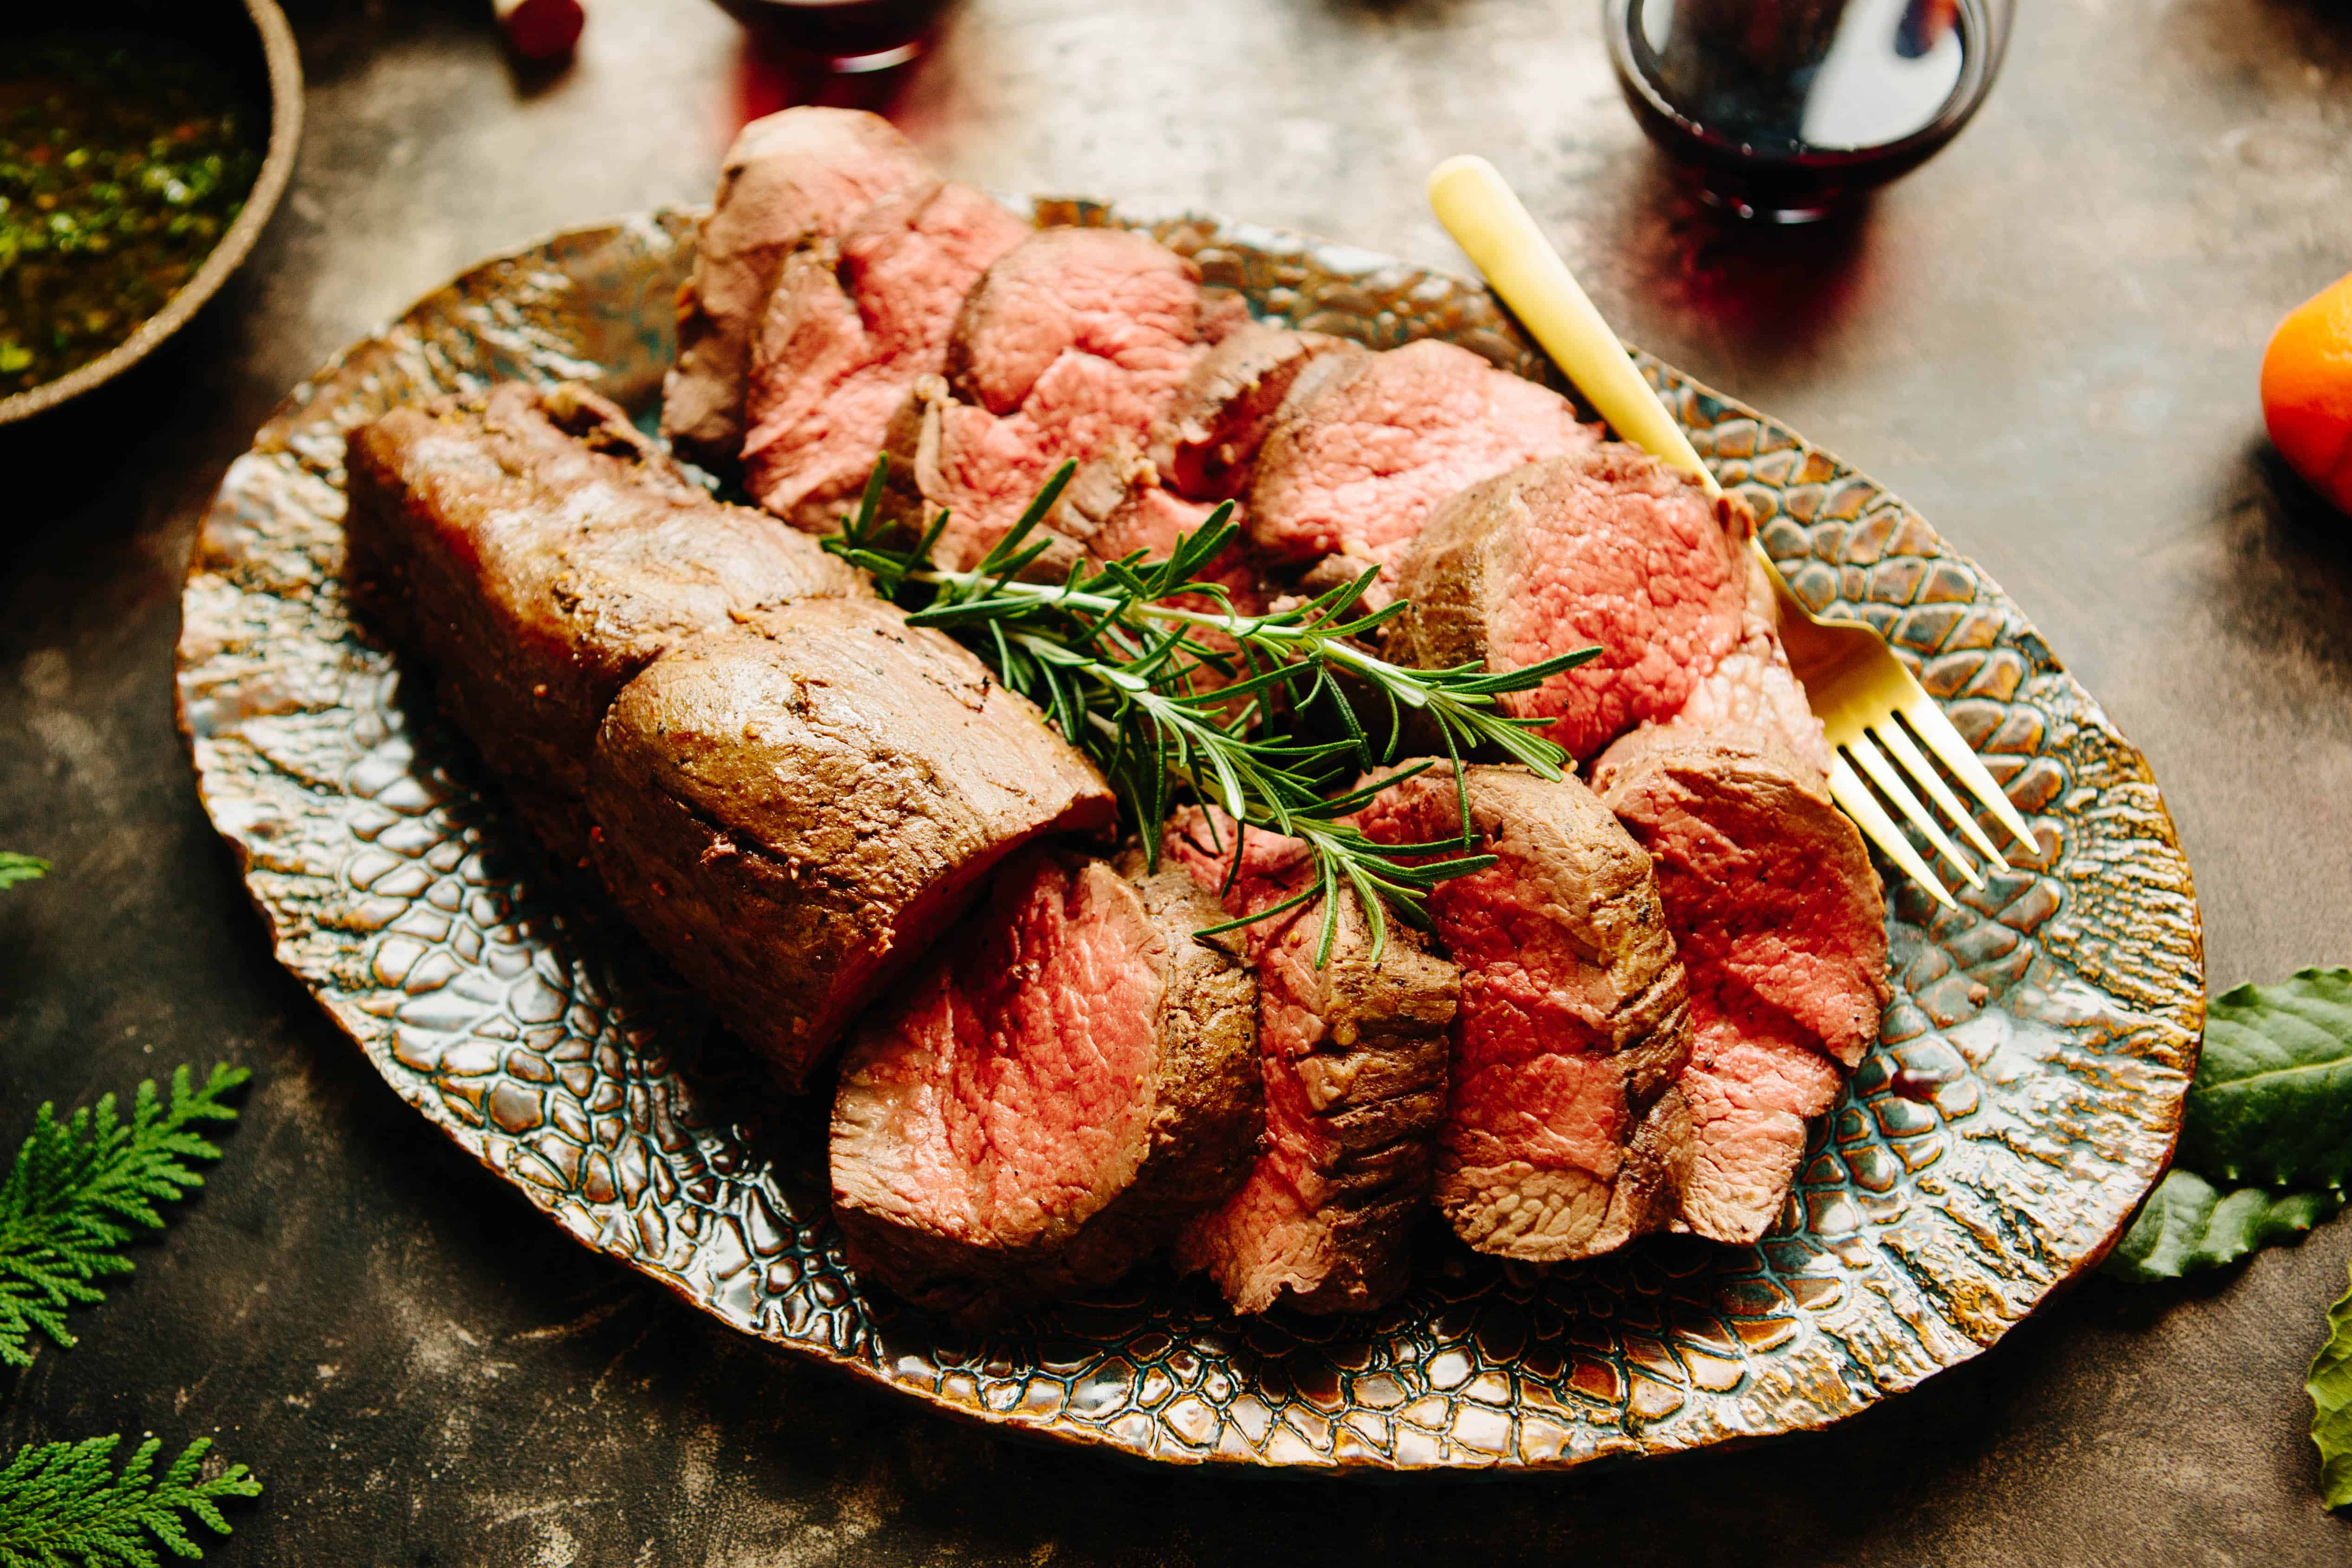 Platter of sliced rare Whole Roasted Beef Tenderloin with rosemary garnish and gold fork